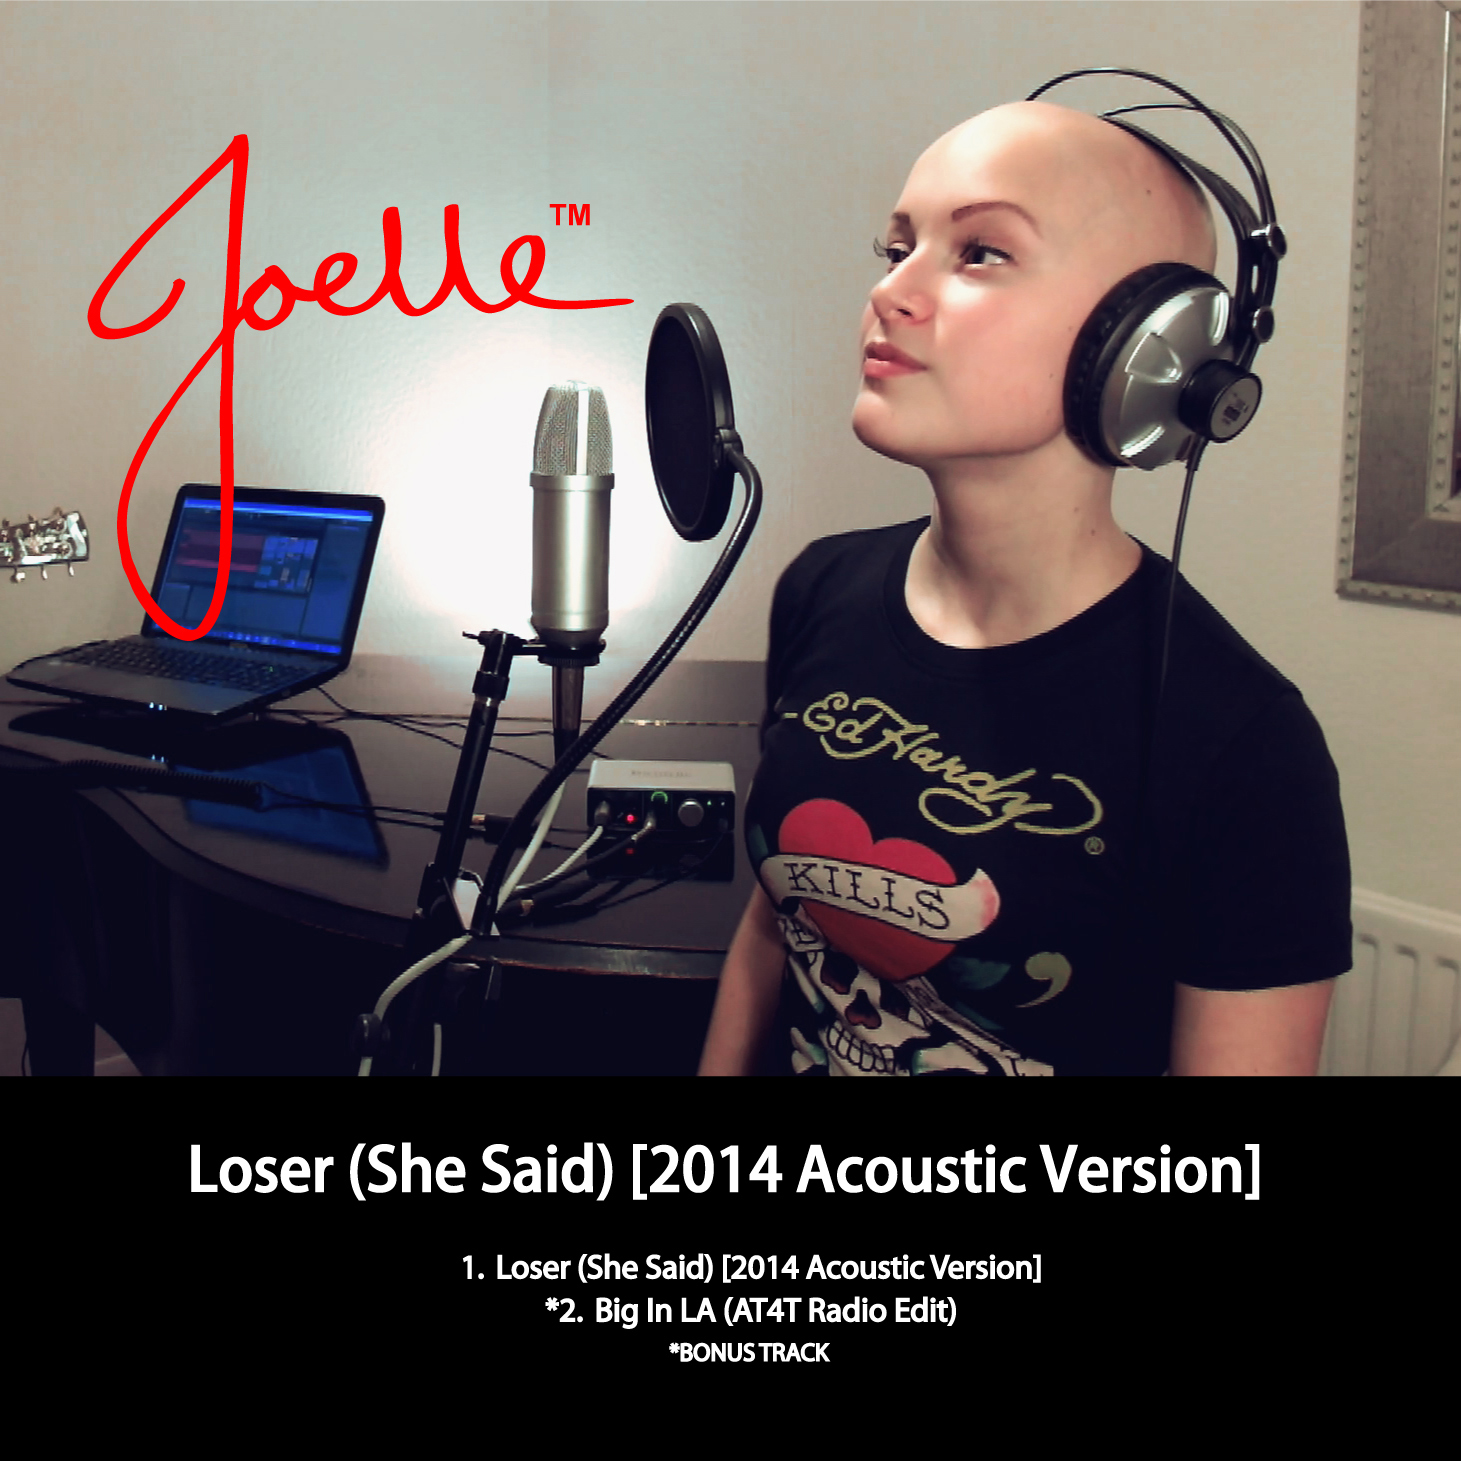 Loser (She Said) [2014 Acoustic Version] CD